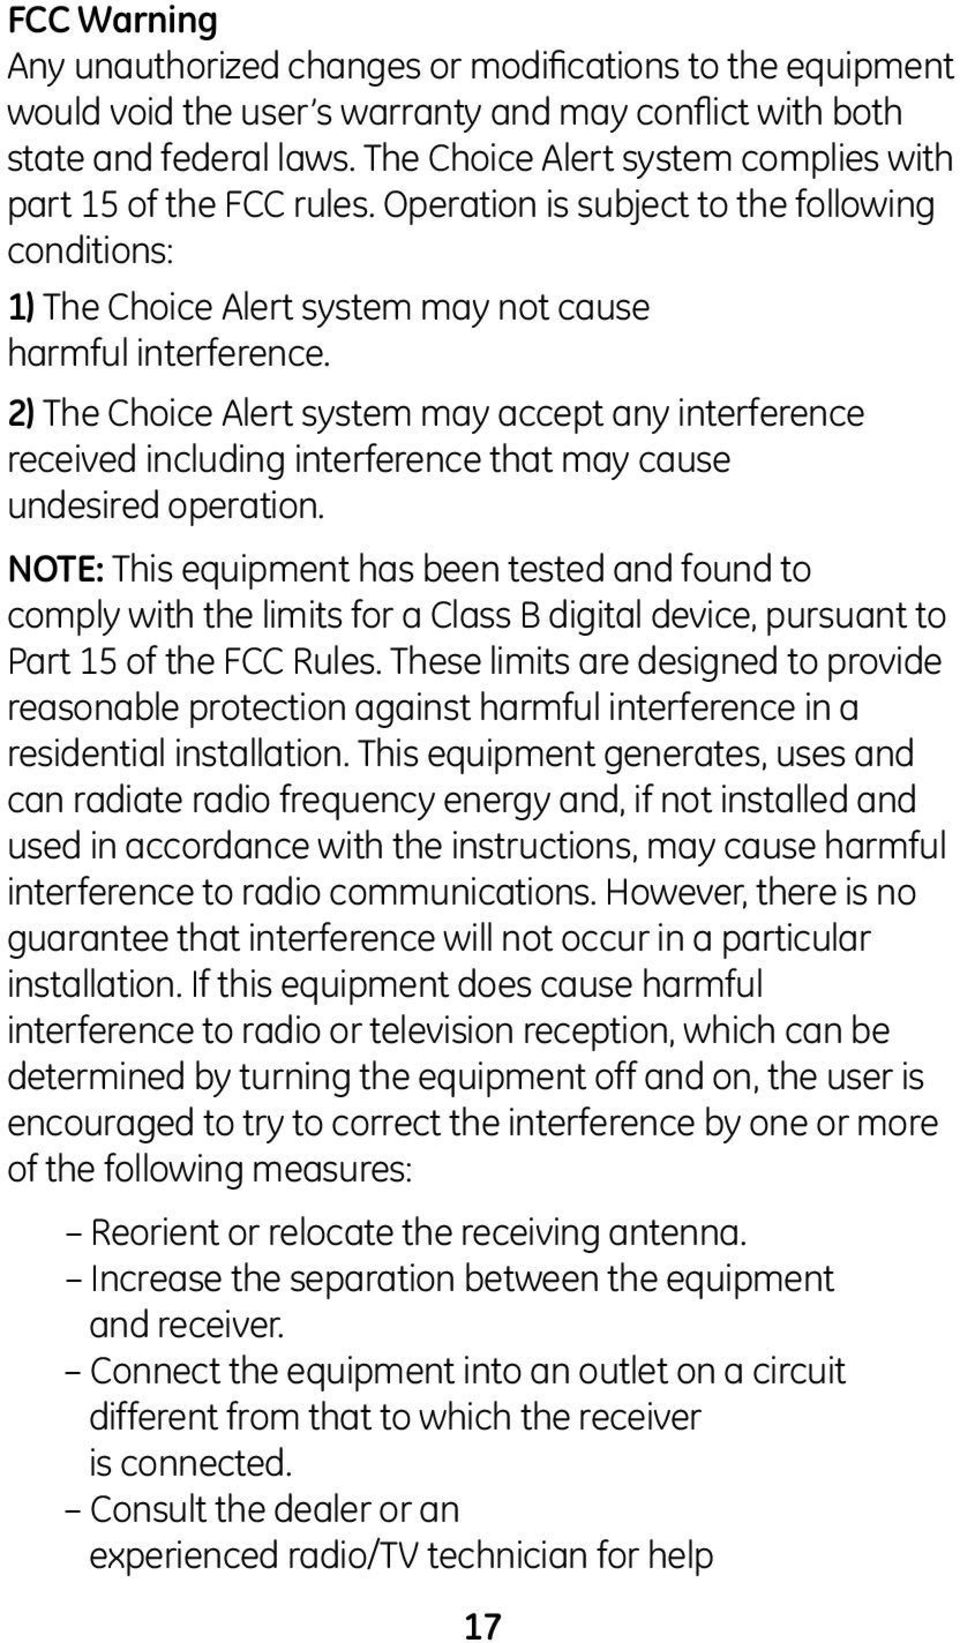 2) The Choice Alert system may accept any interference received including interference that may cause undesired operation.